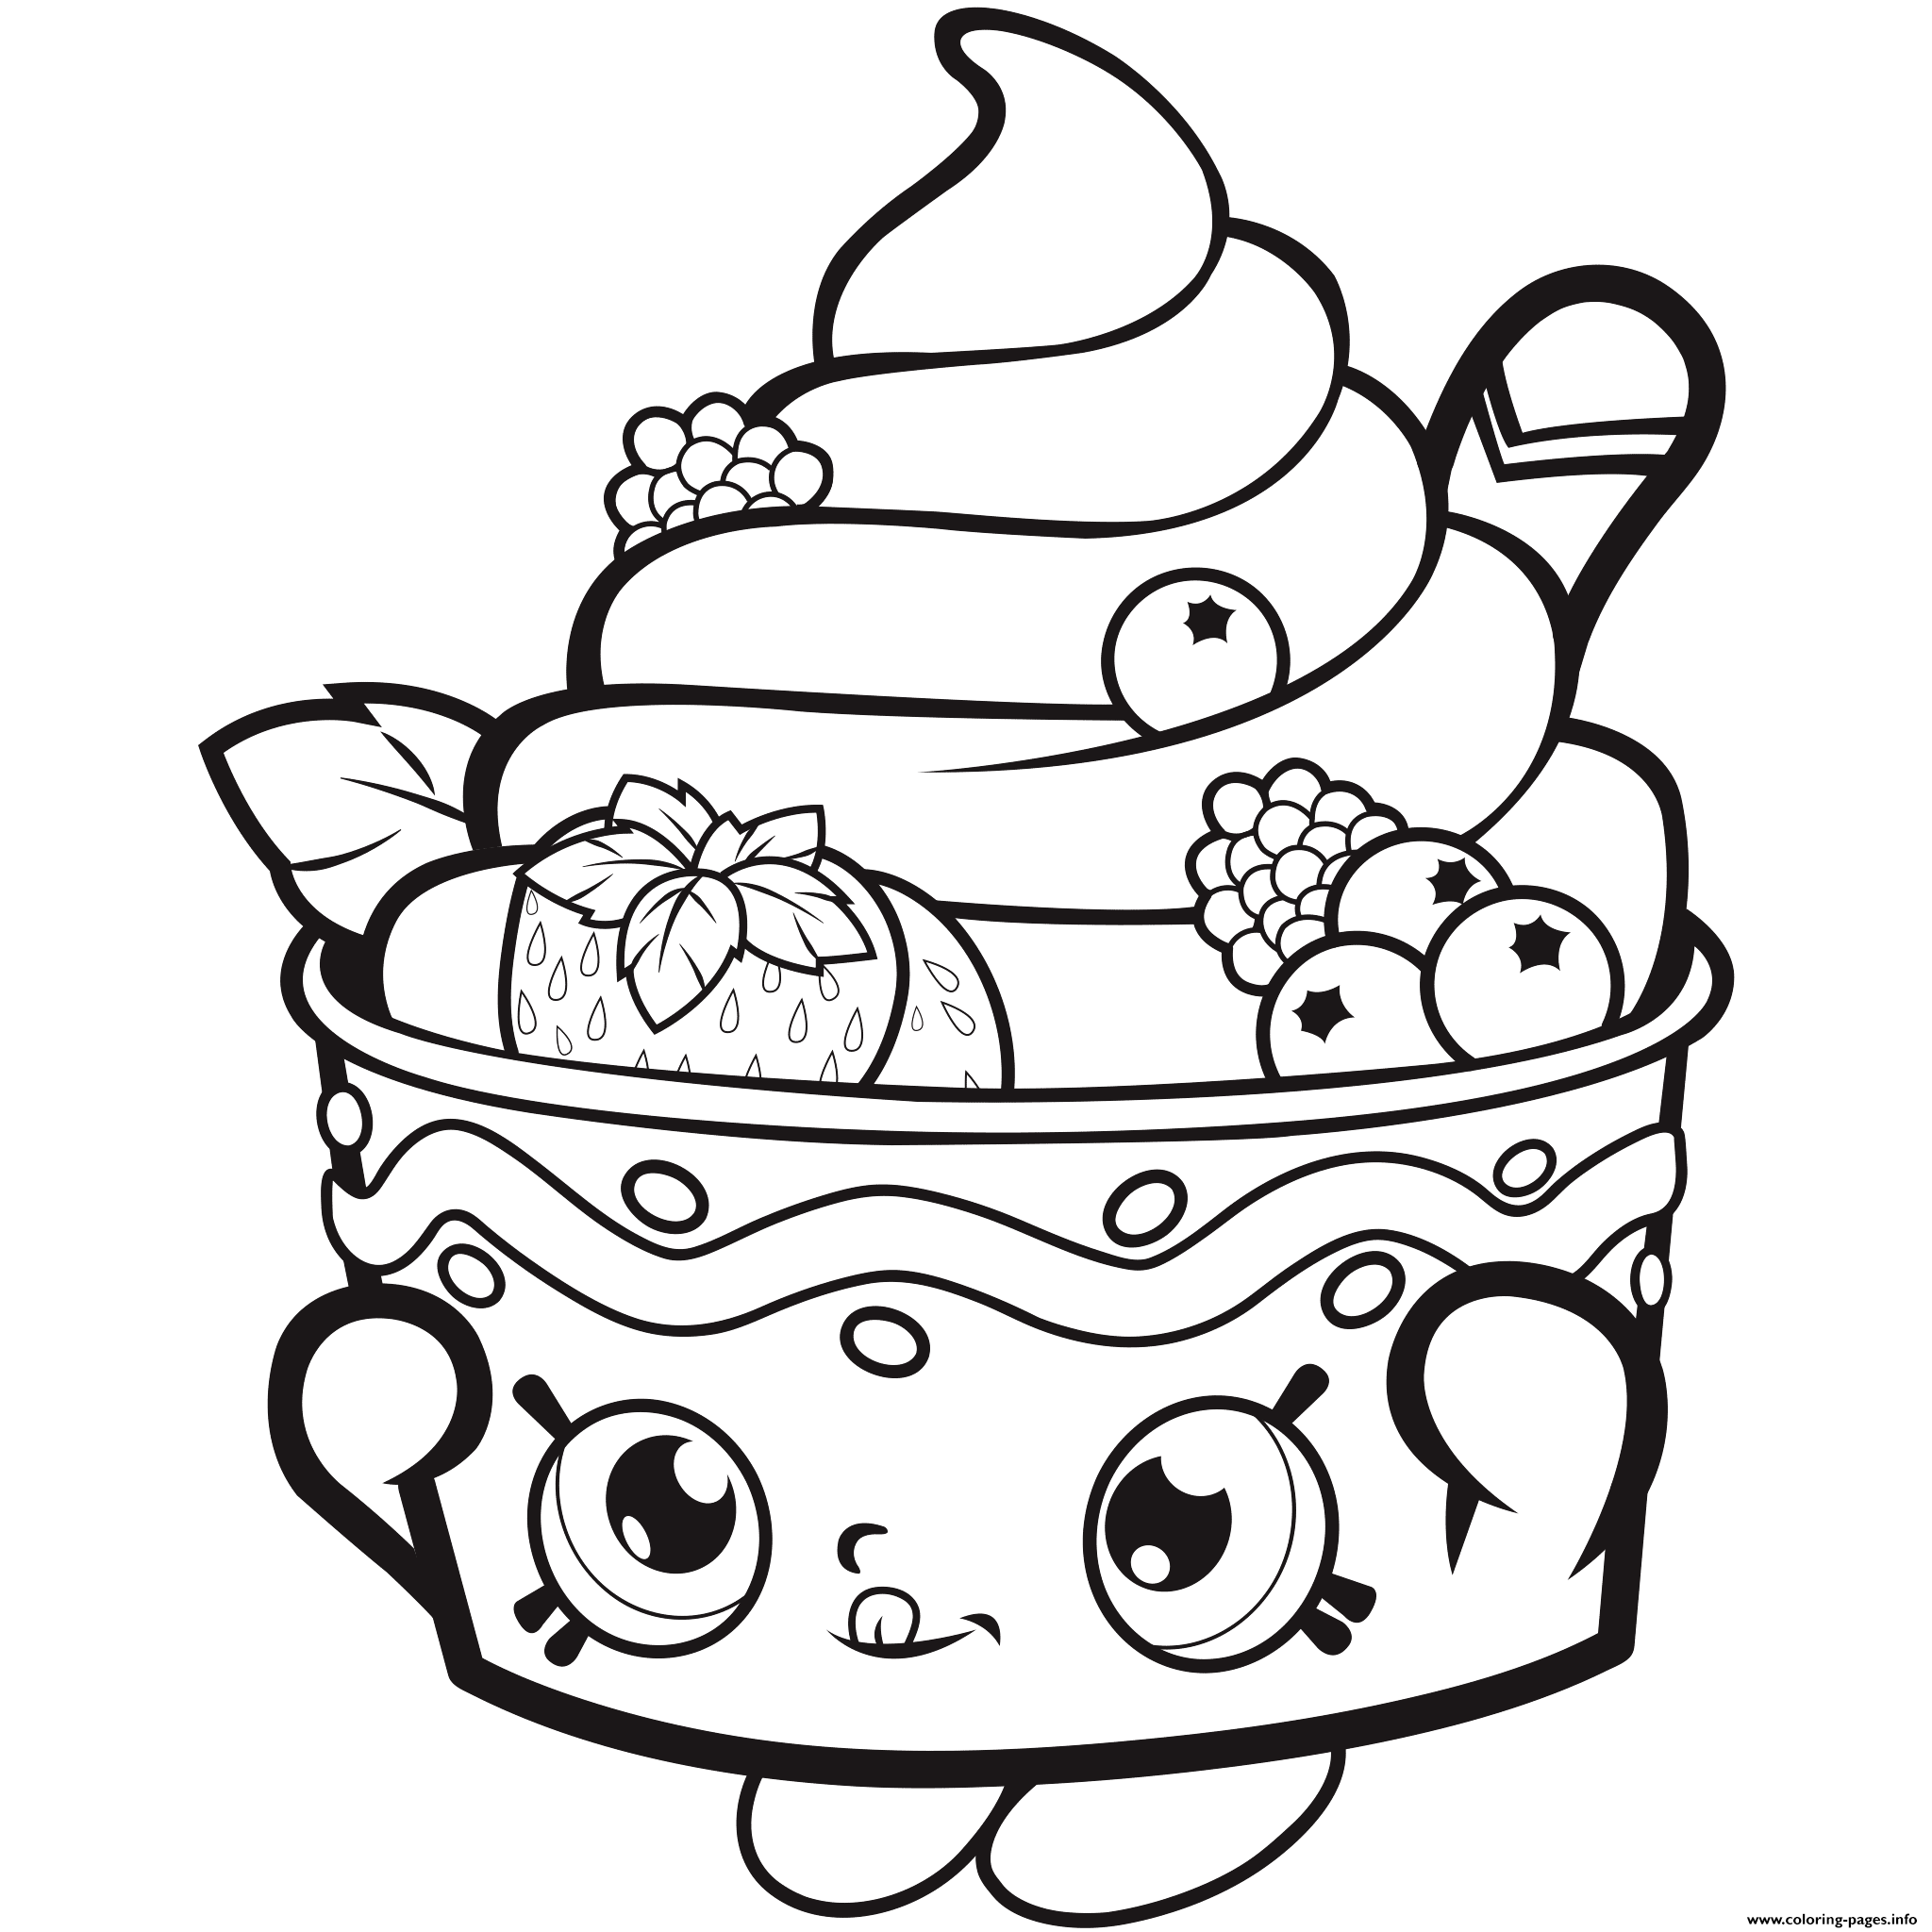 Shopkins Drawing Pages at GetDrawings.com | Free for personal use ...